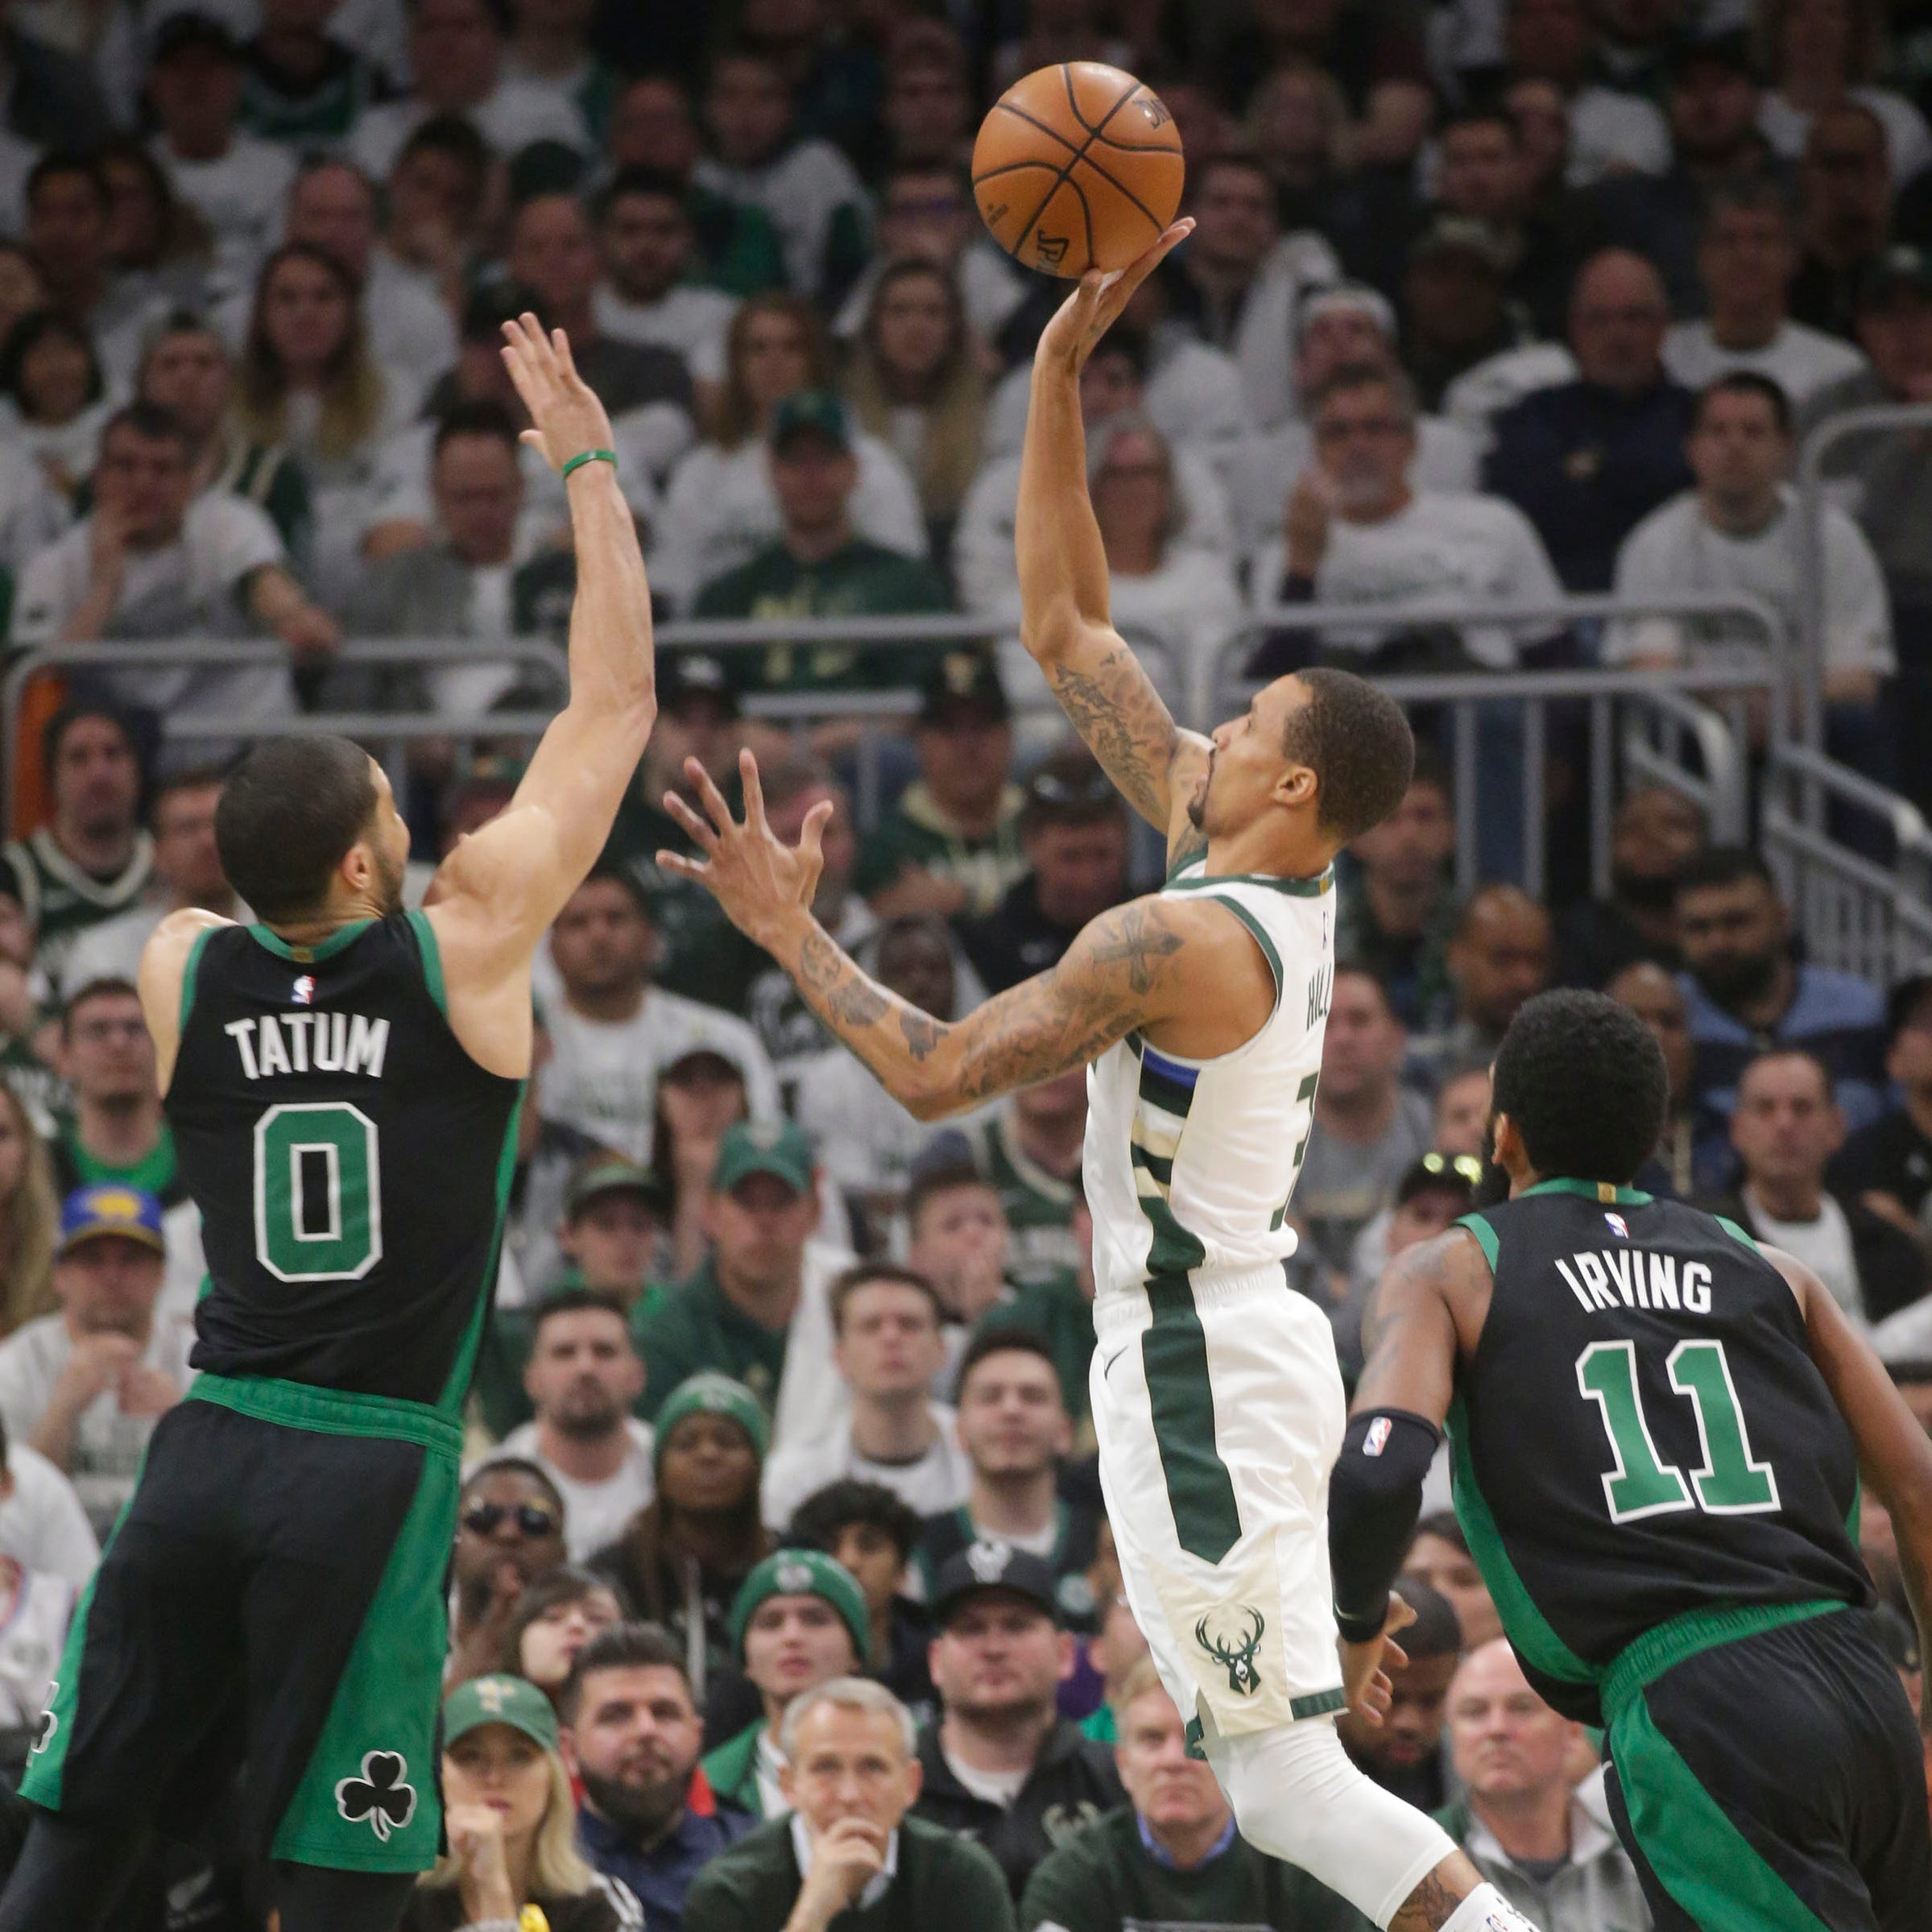 As other teams shorten their rotations, the Bucks continue to rely on their depth